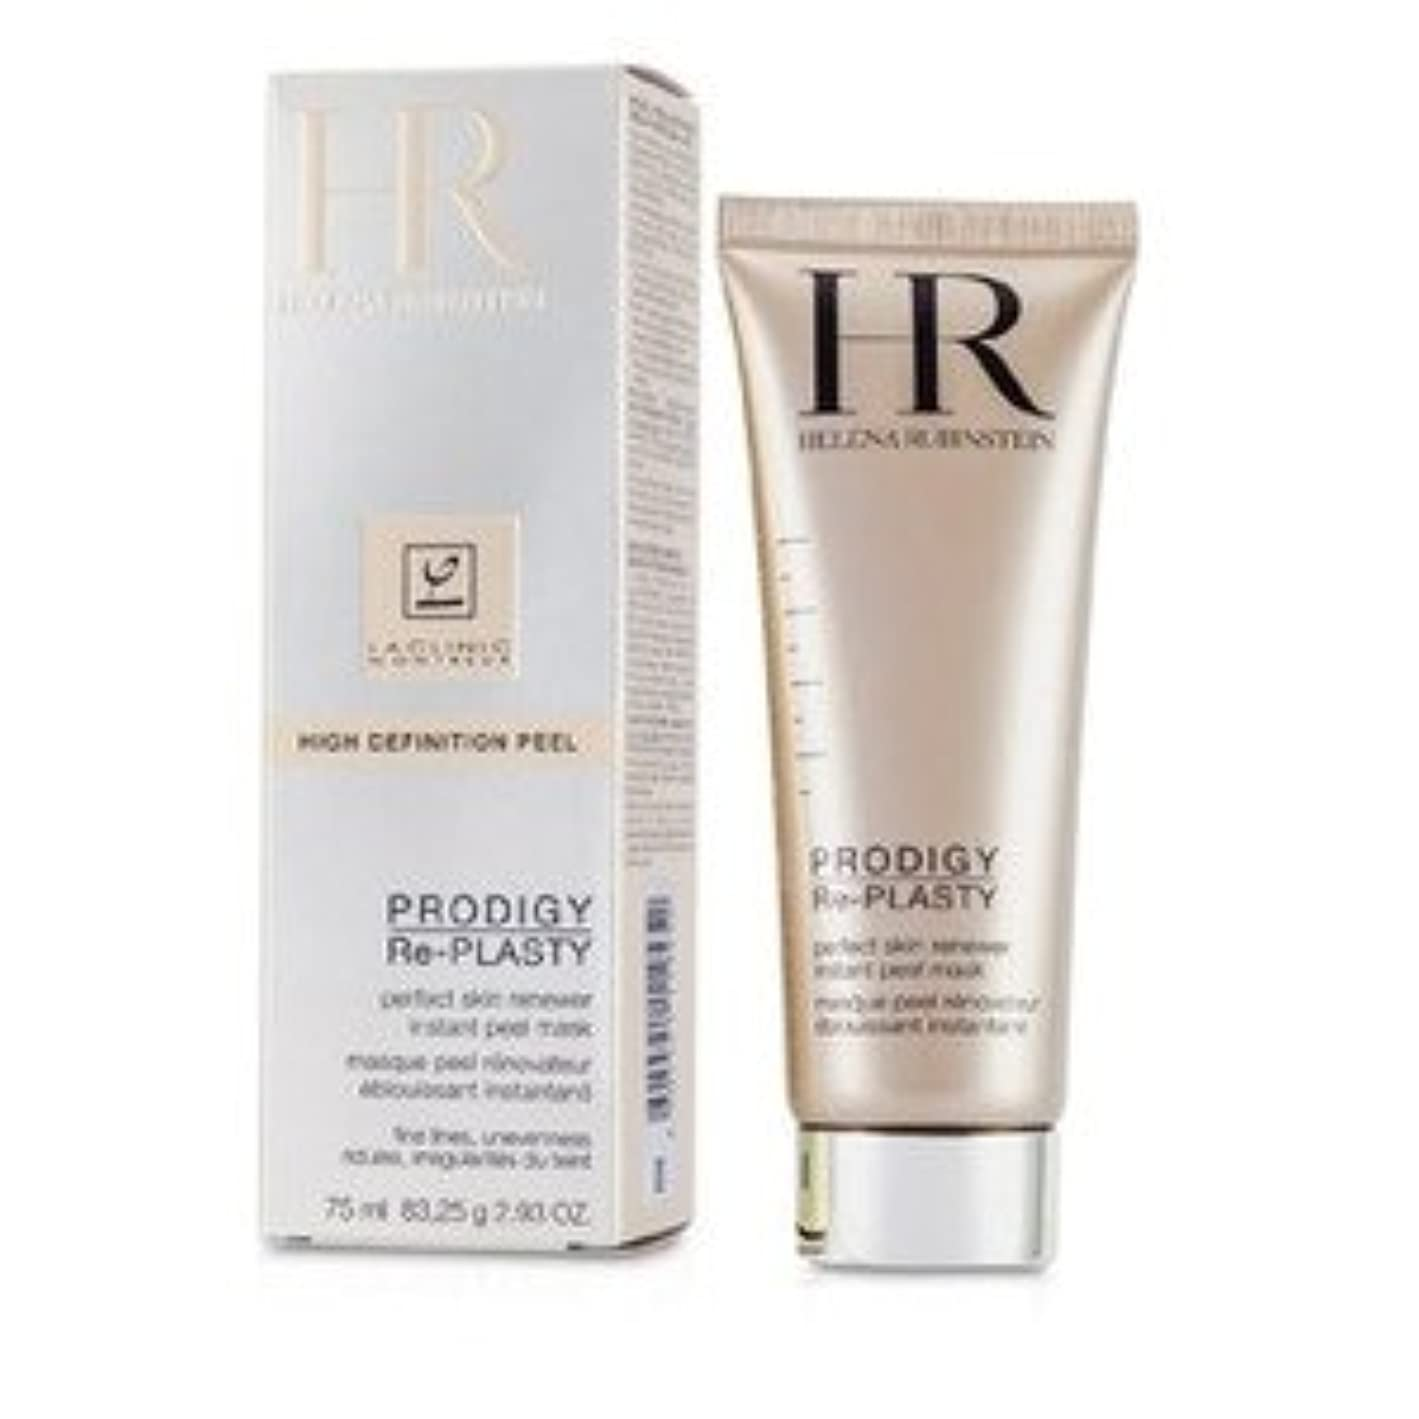 スリーブバルセロナ荒涼としたHelena Rubinstein(ヘレナ?ルビンスタイン) Prodigy Re-Plasty High Definition Peel Perfect Skin Renewer Instant Peel Mask 75ml...